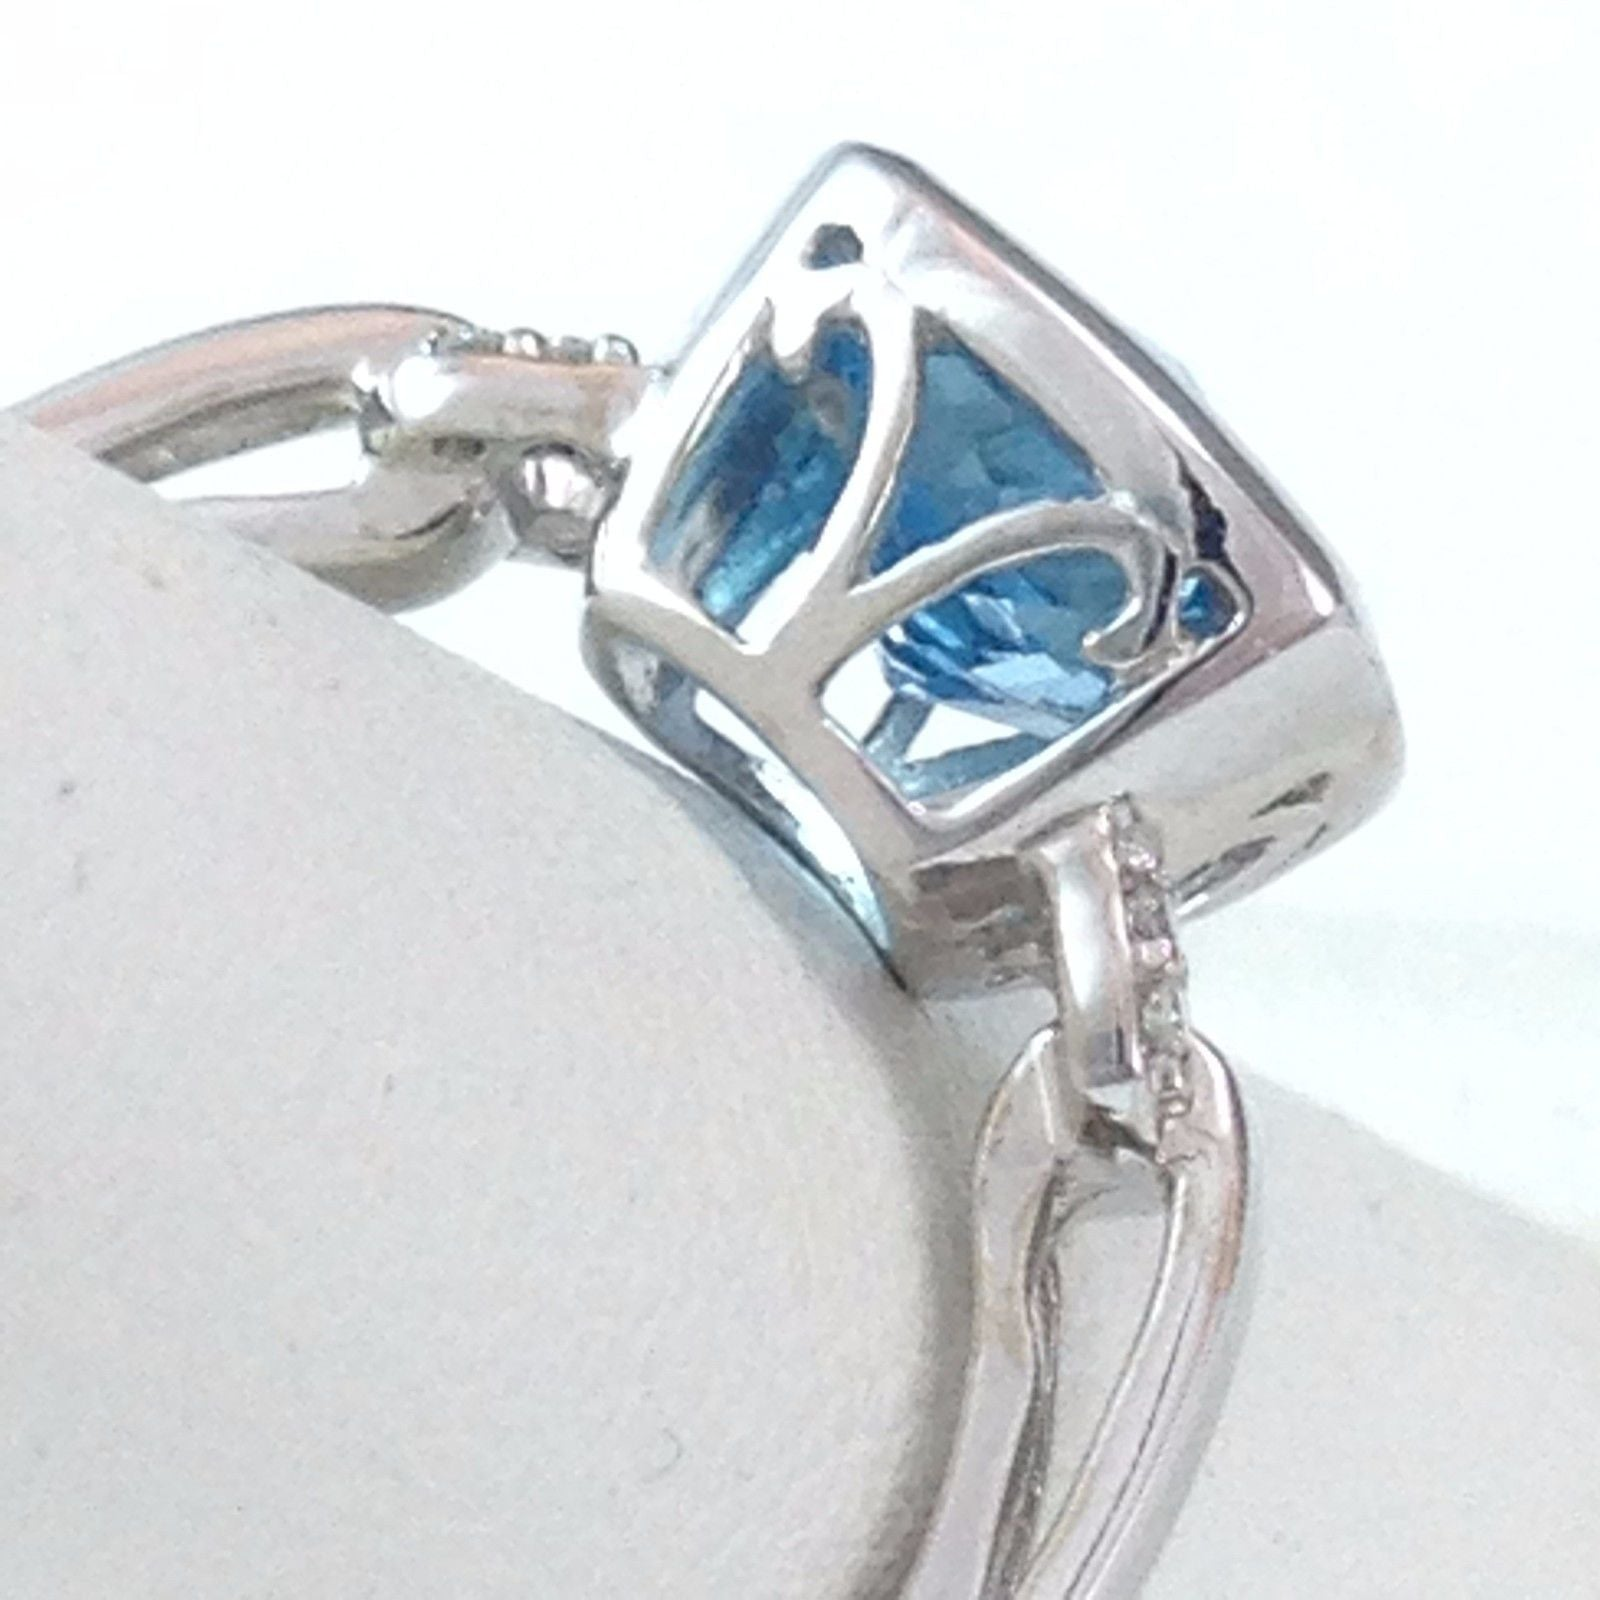 Genuine 2.5 ct Blue Topaz & Diamond Ring 14K white gold $1280 NWT